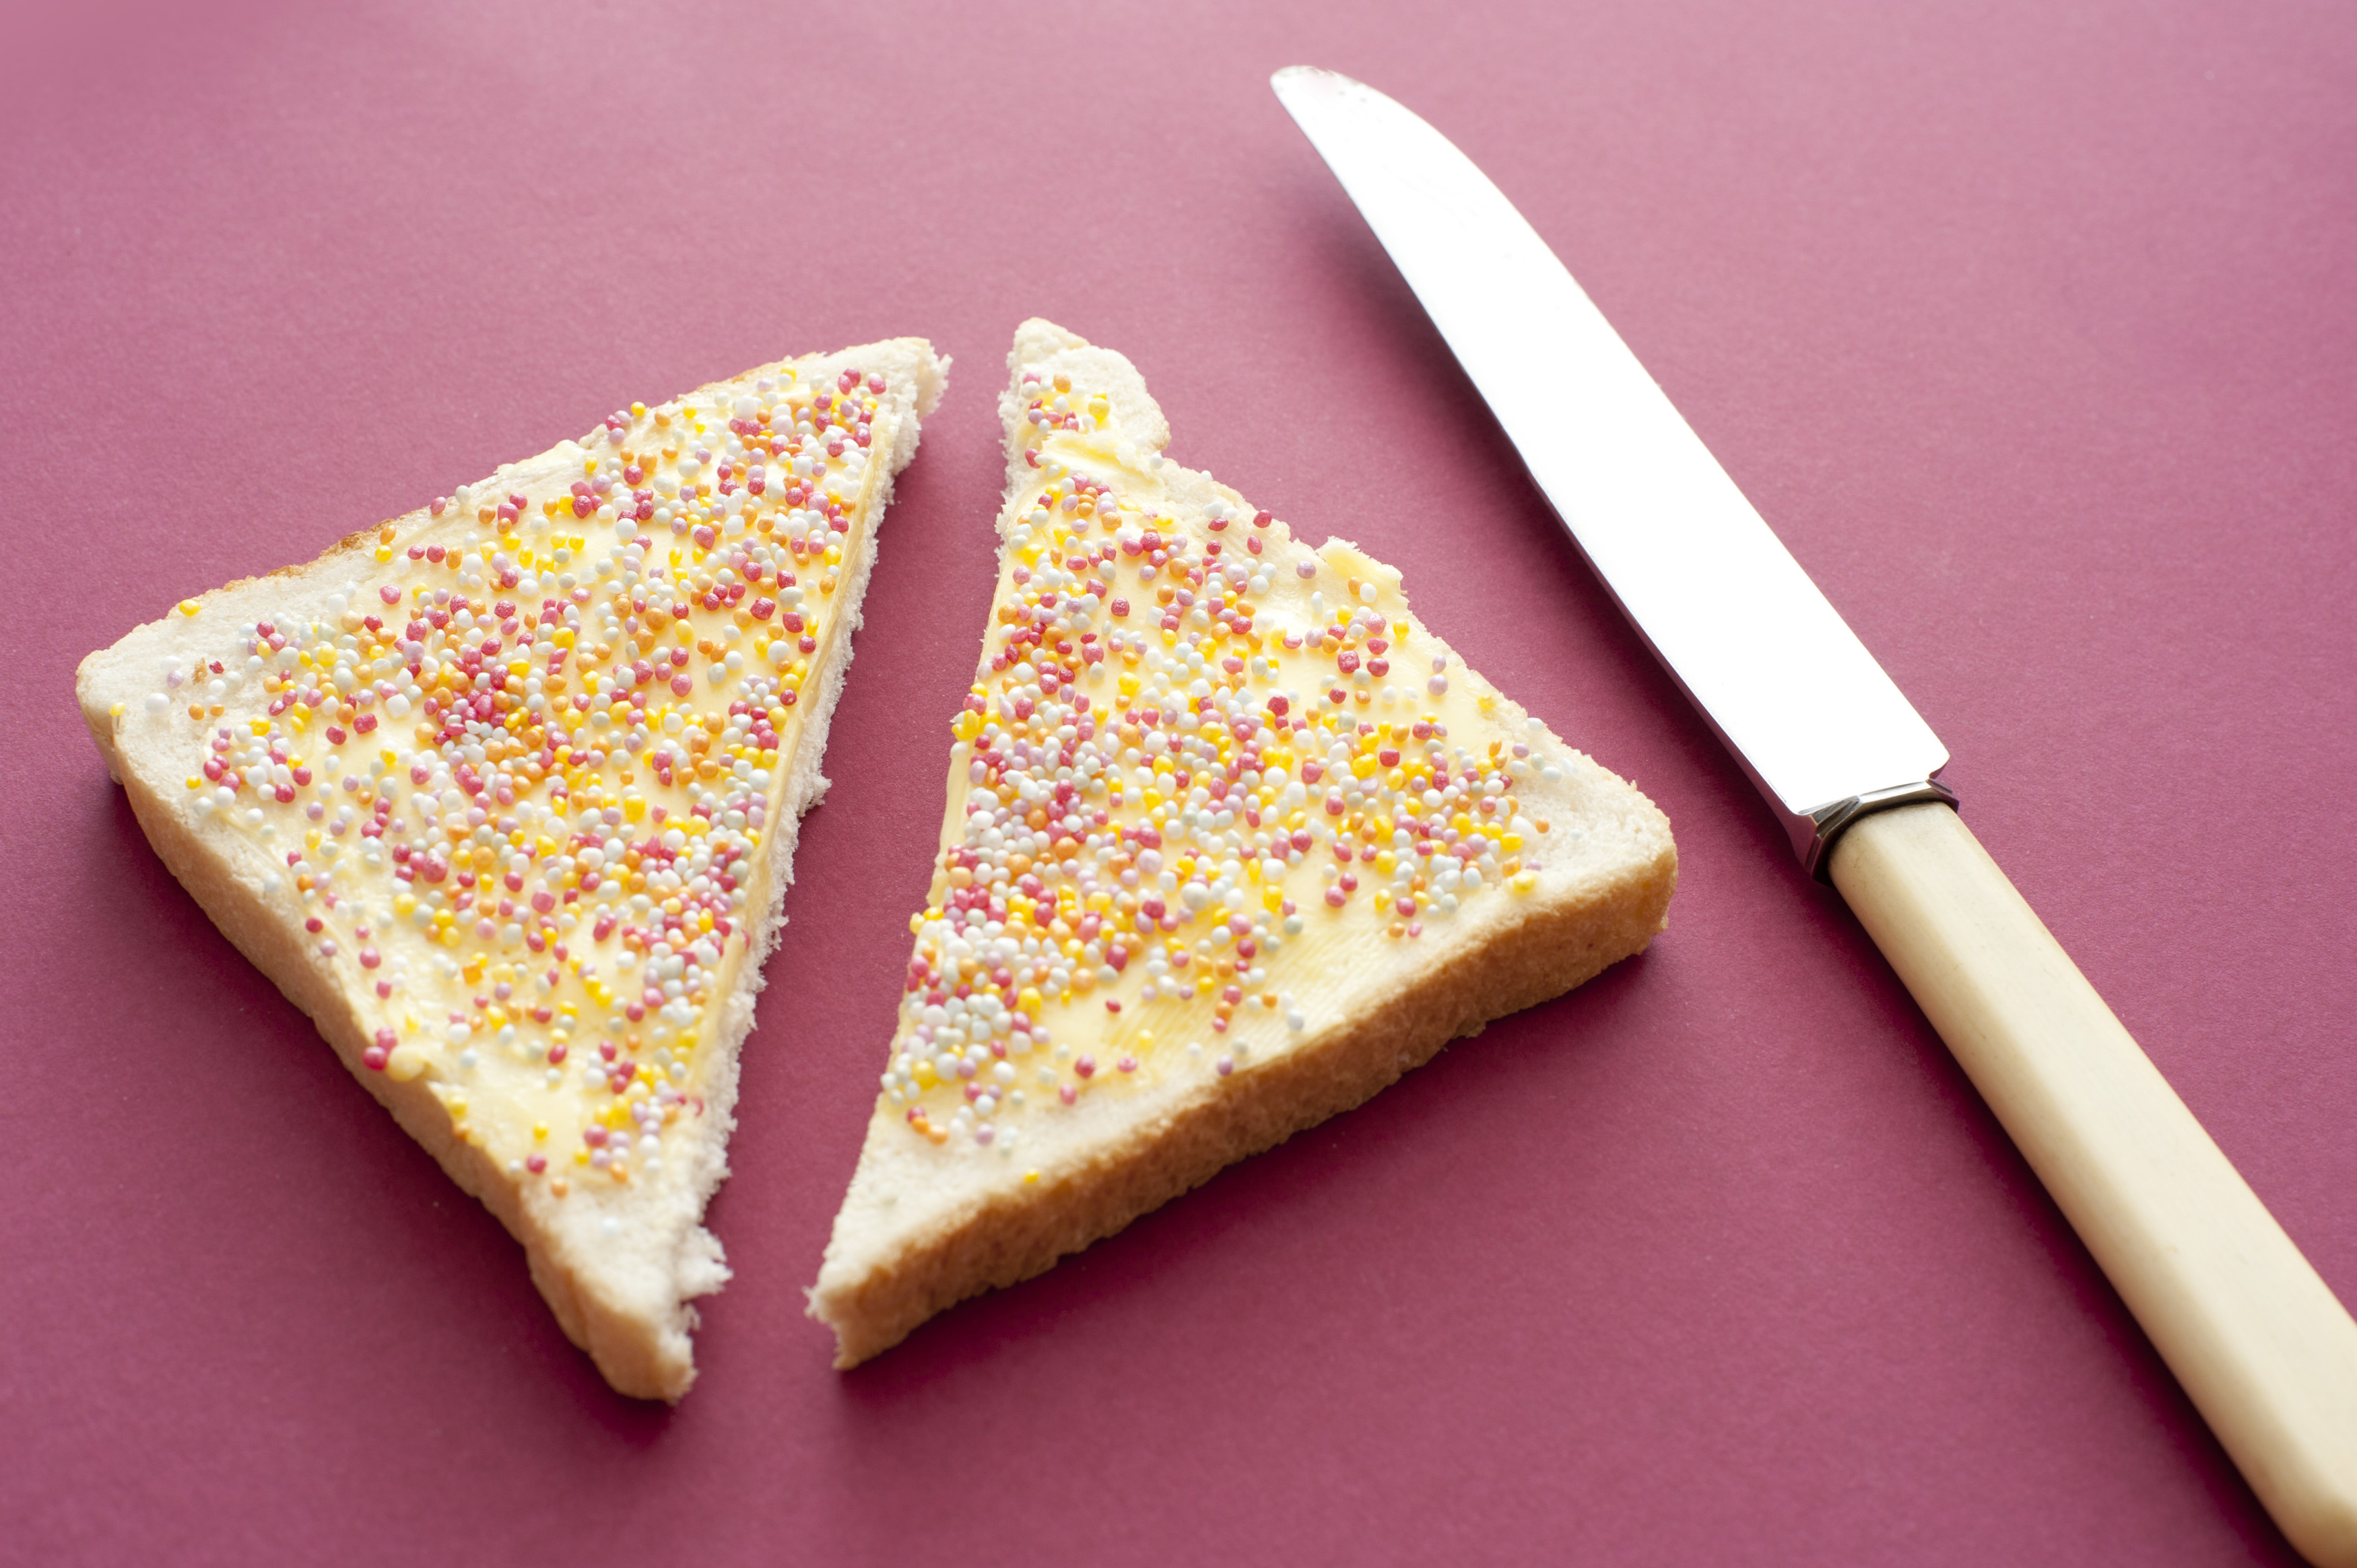 free stock photo 12755 fairybread cut in half with knife